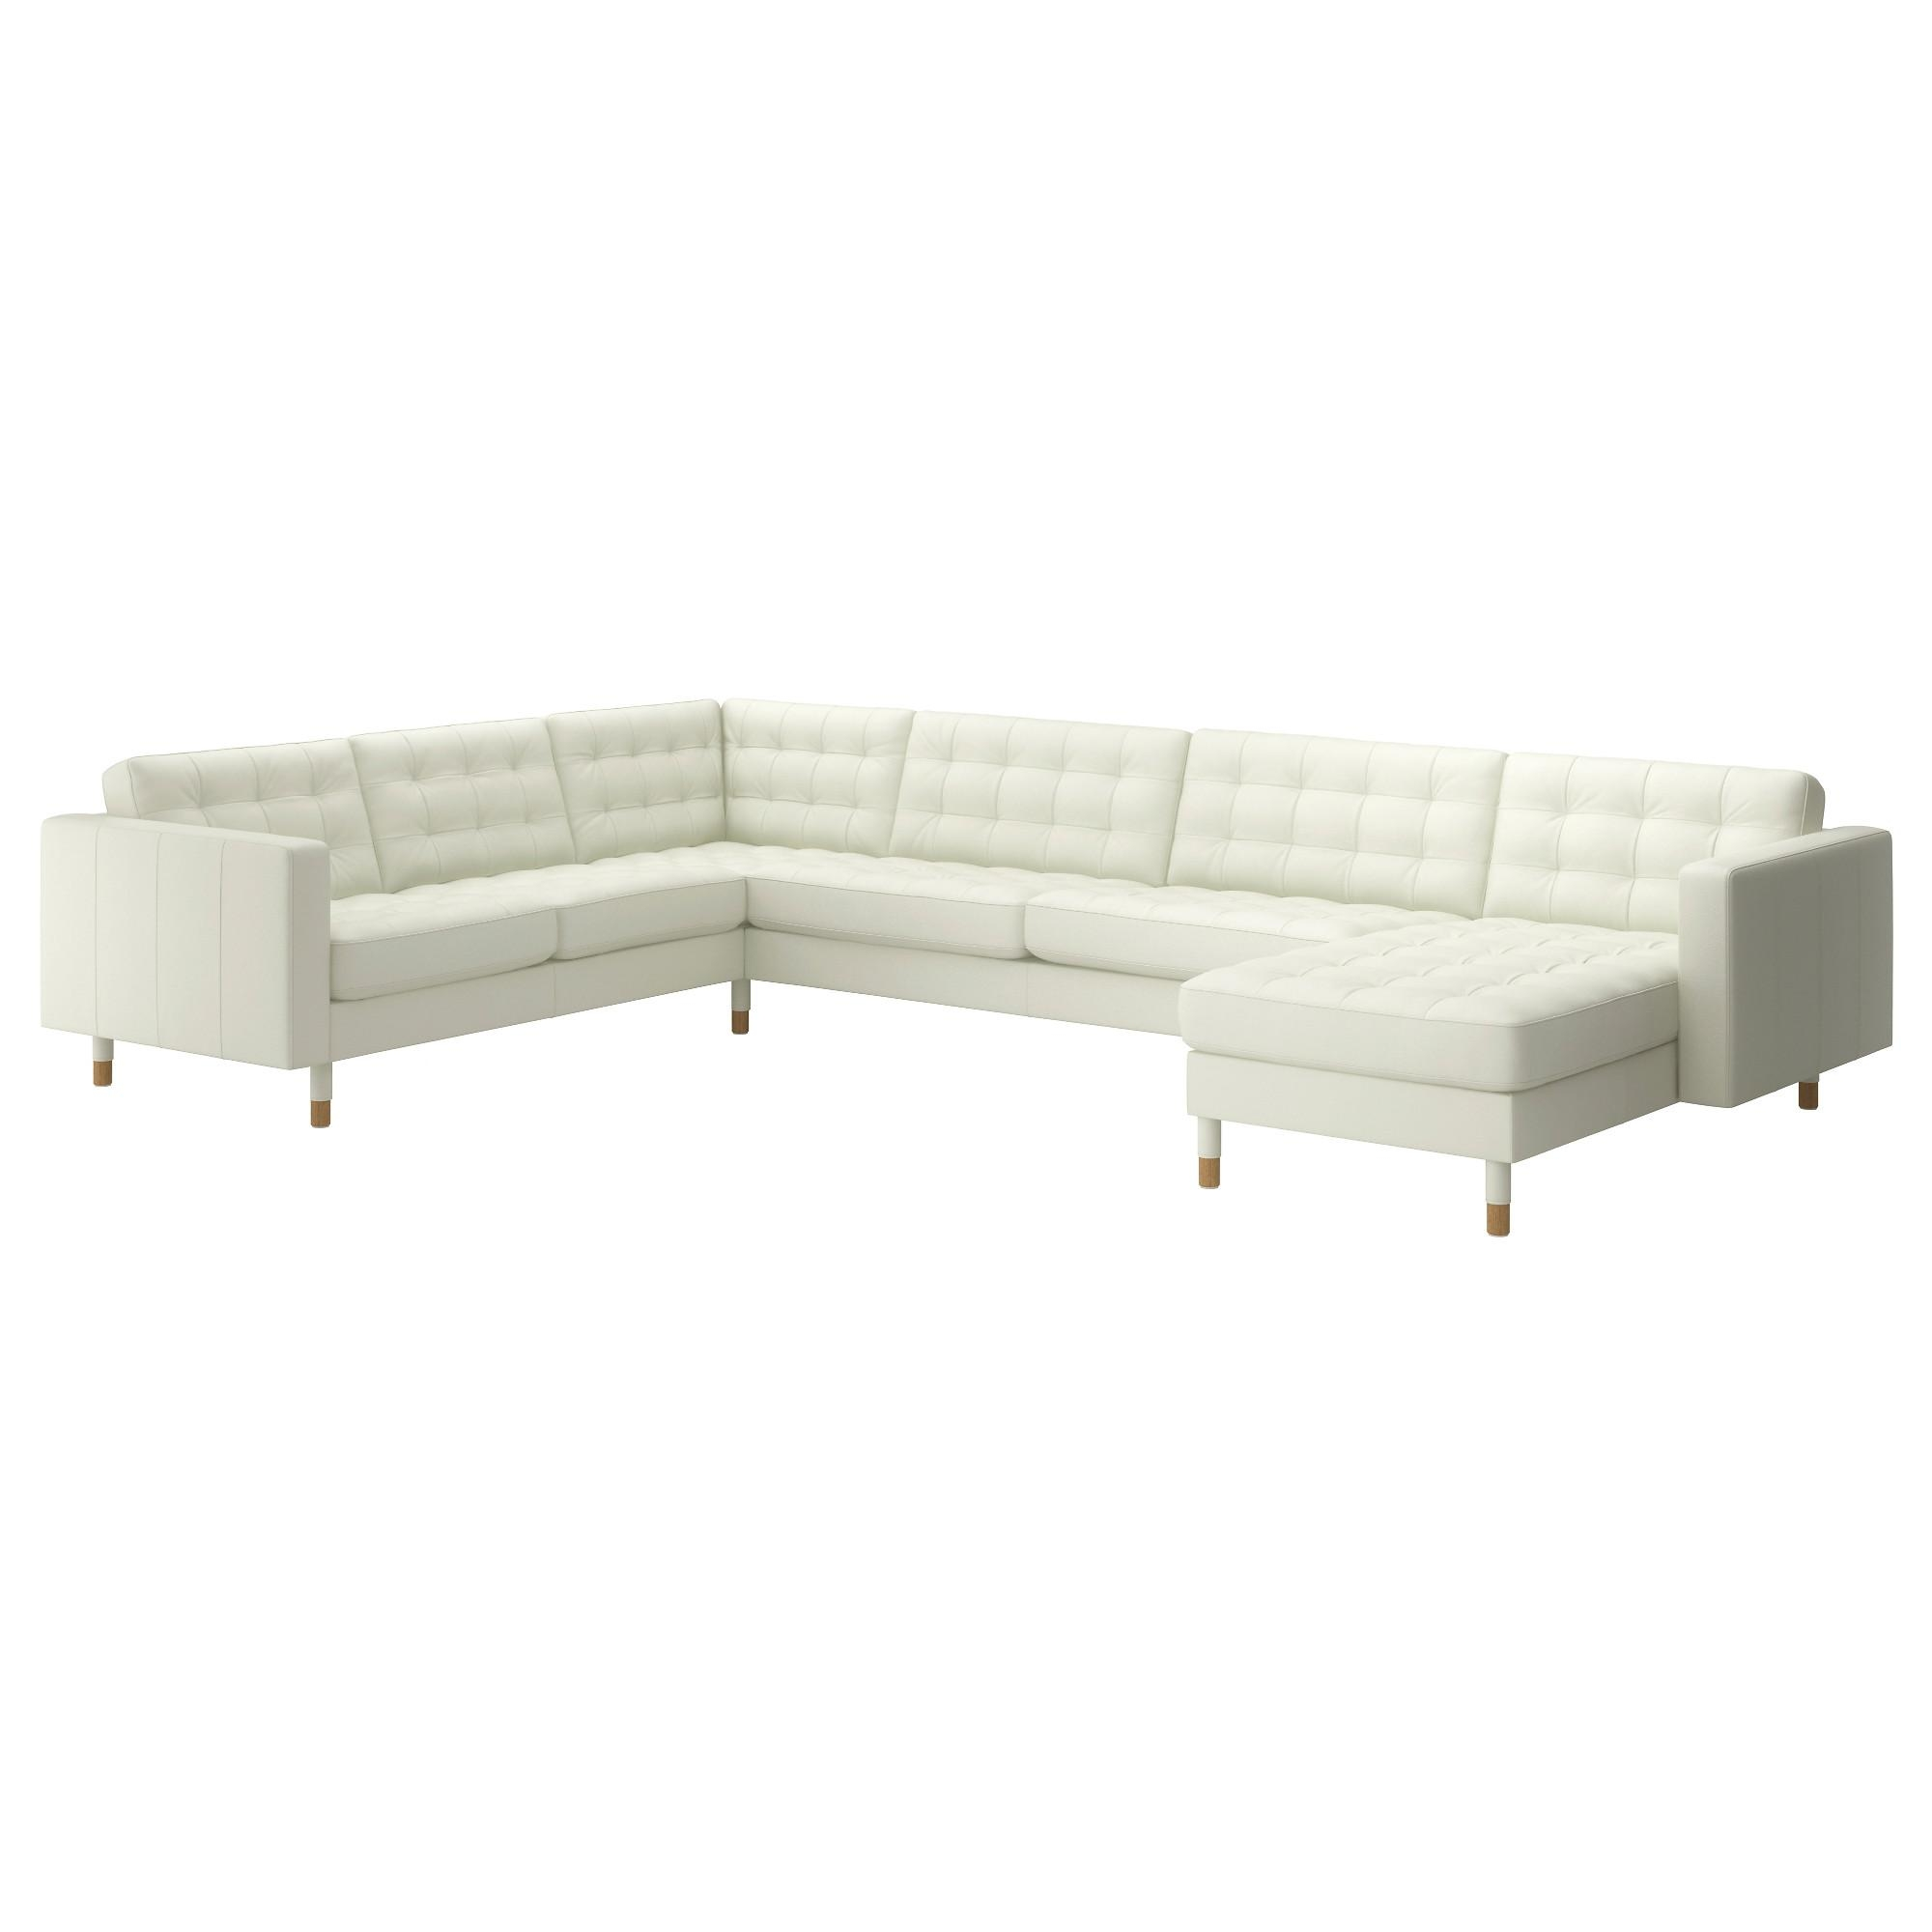 Sectional Sofas & Couches – Ikea With 2 Seat Sectional Sofas (Image 10 of 15)